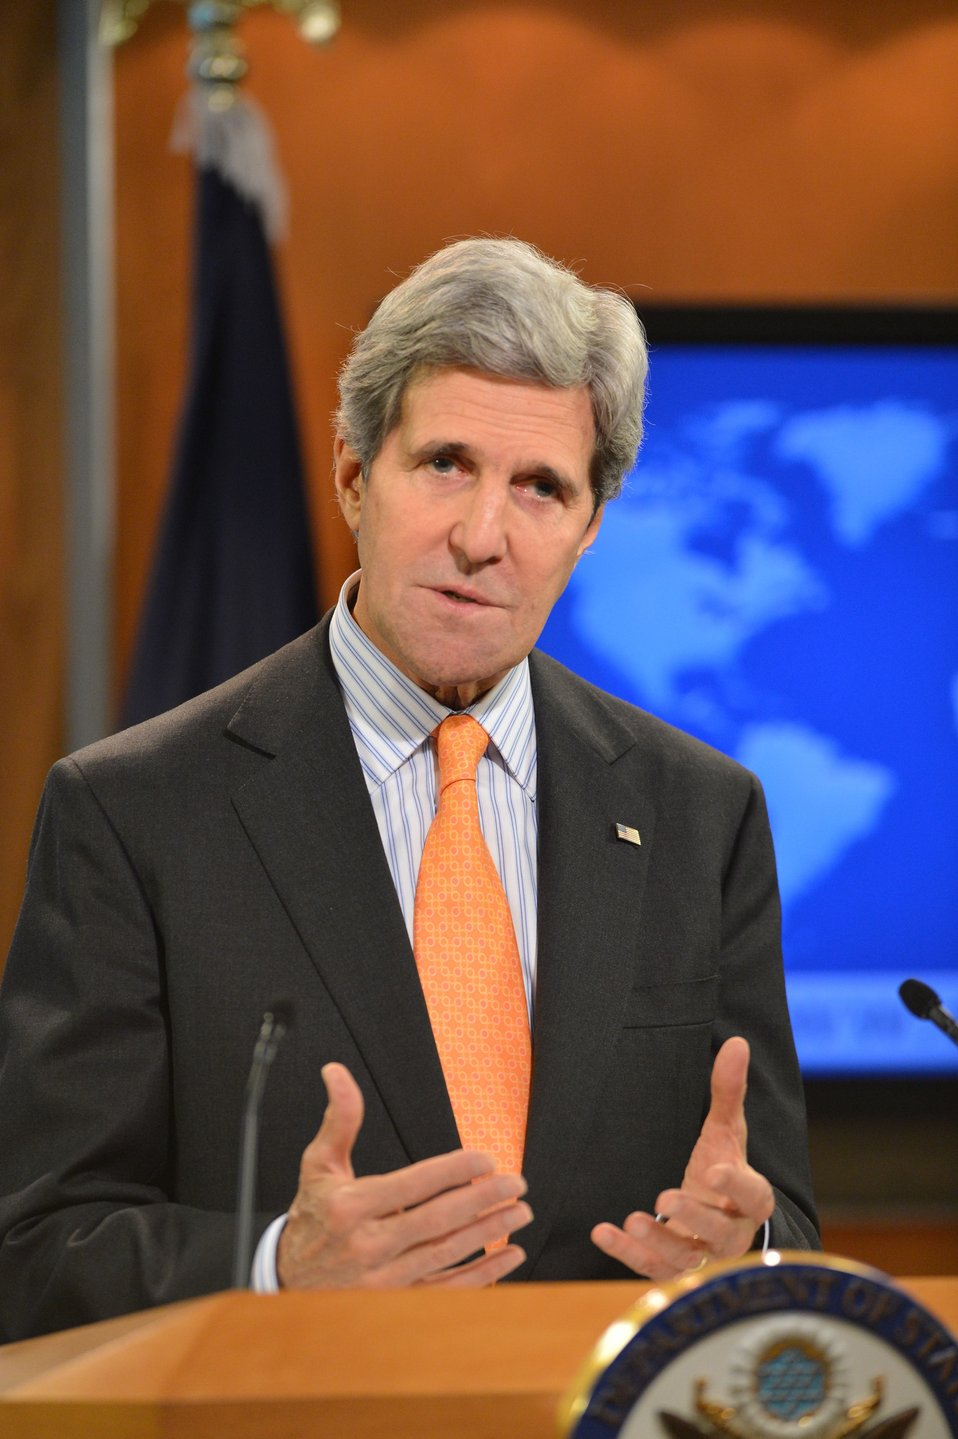 Secretary Kerry Delivers a Message on Syria